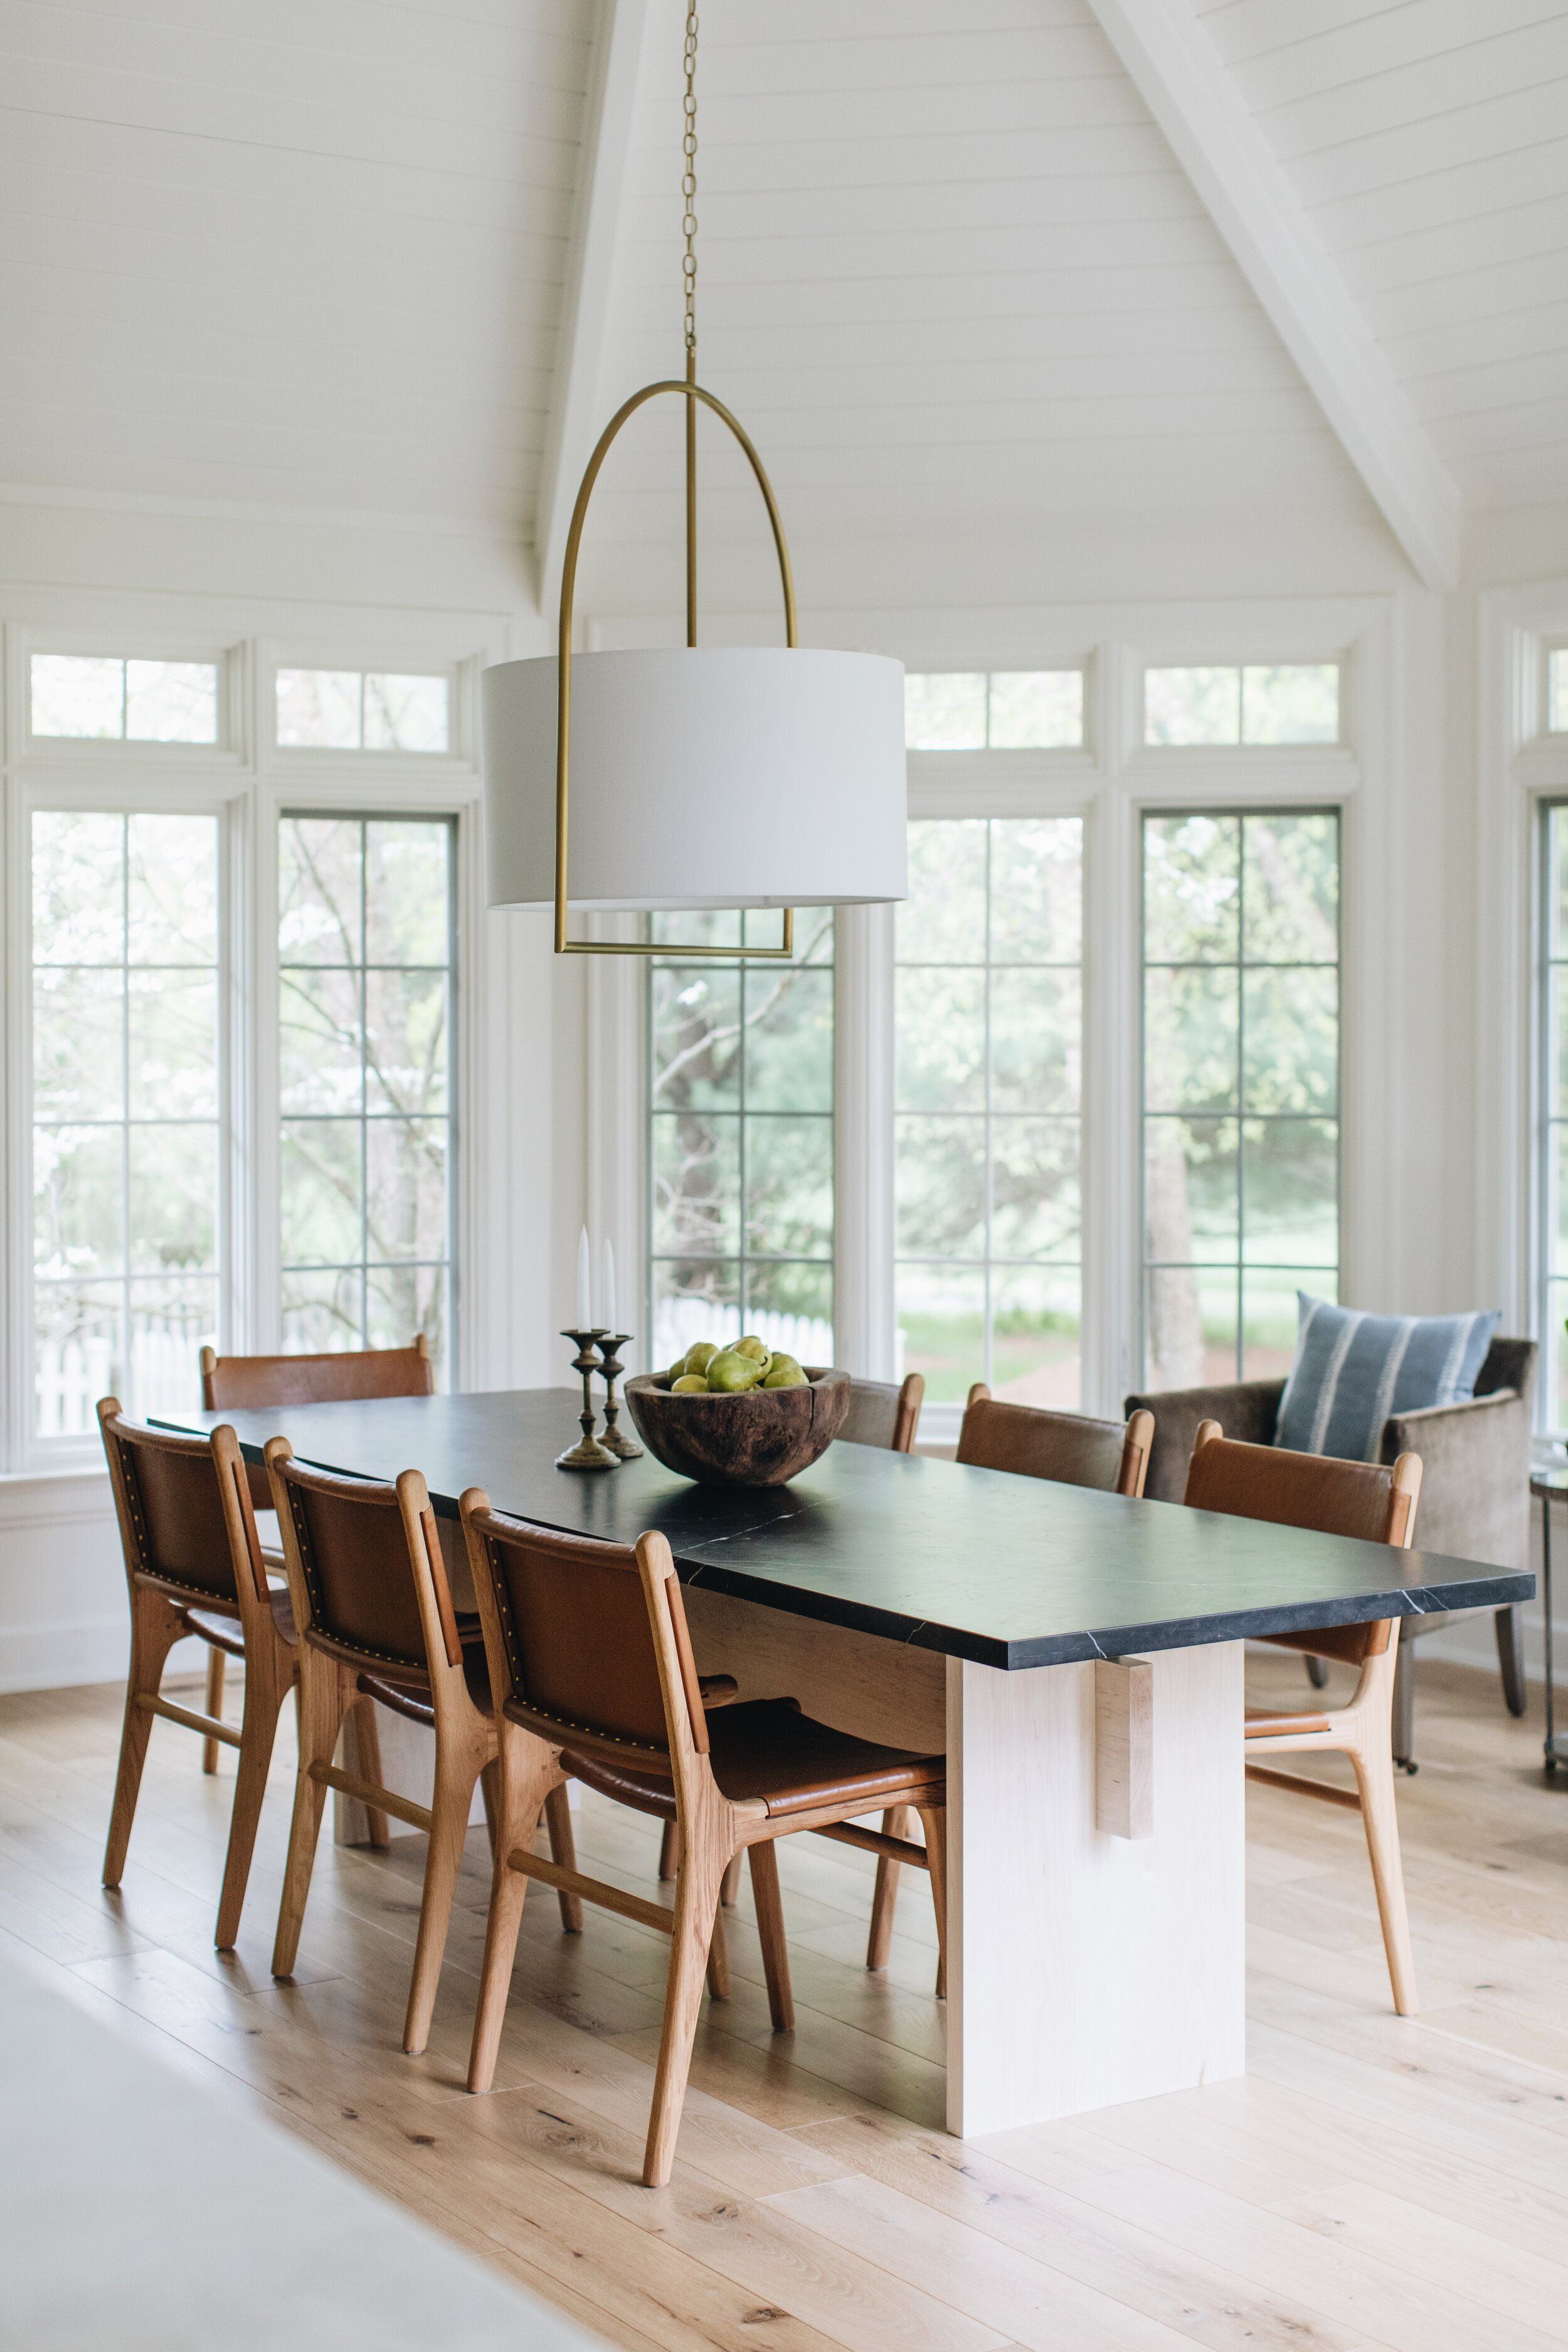 Contemporary Dining With Stunning Light Fixture In 2020 Classic Dining Room Large Dining Room Table Dining Room Design